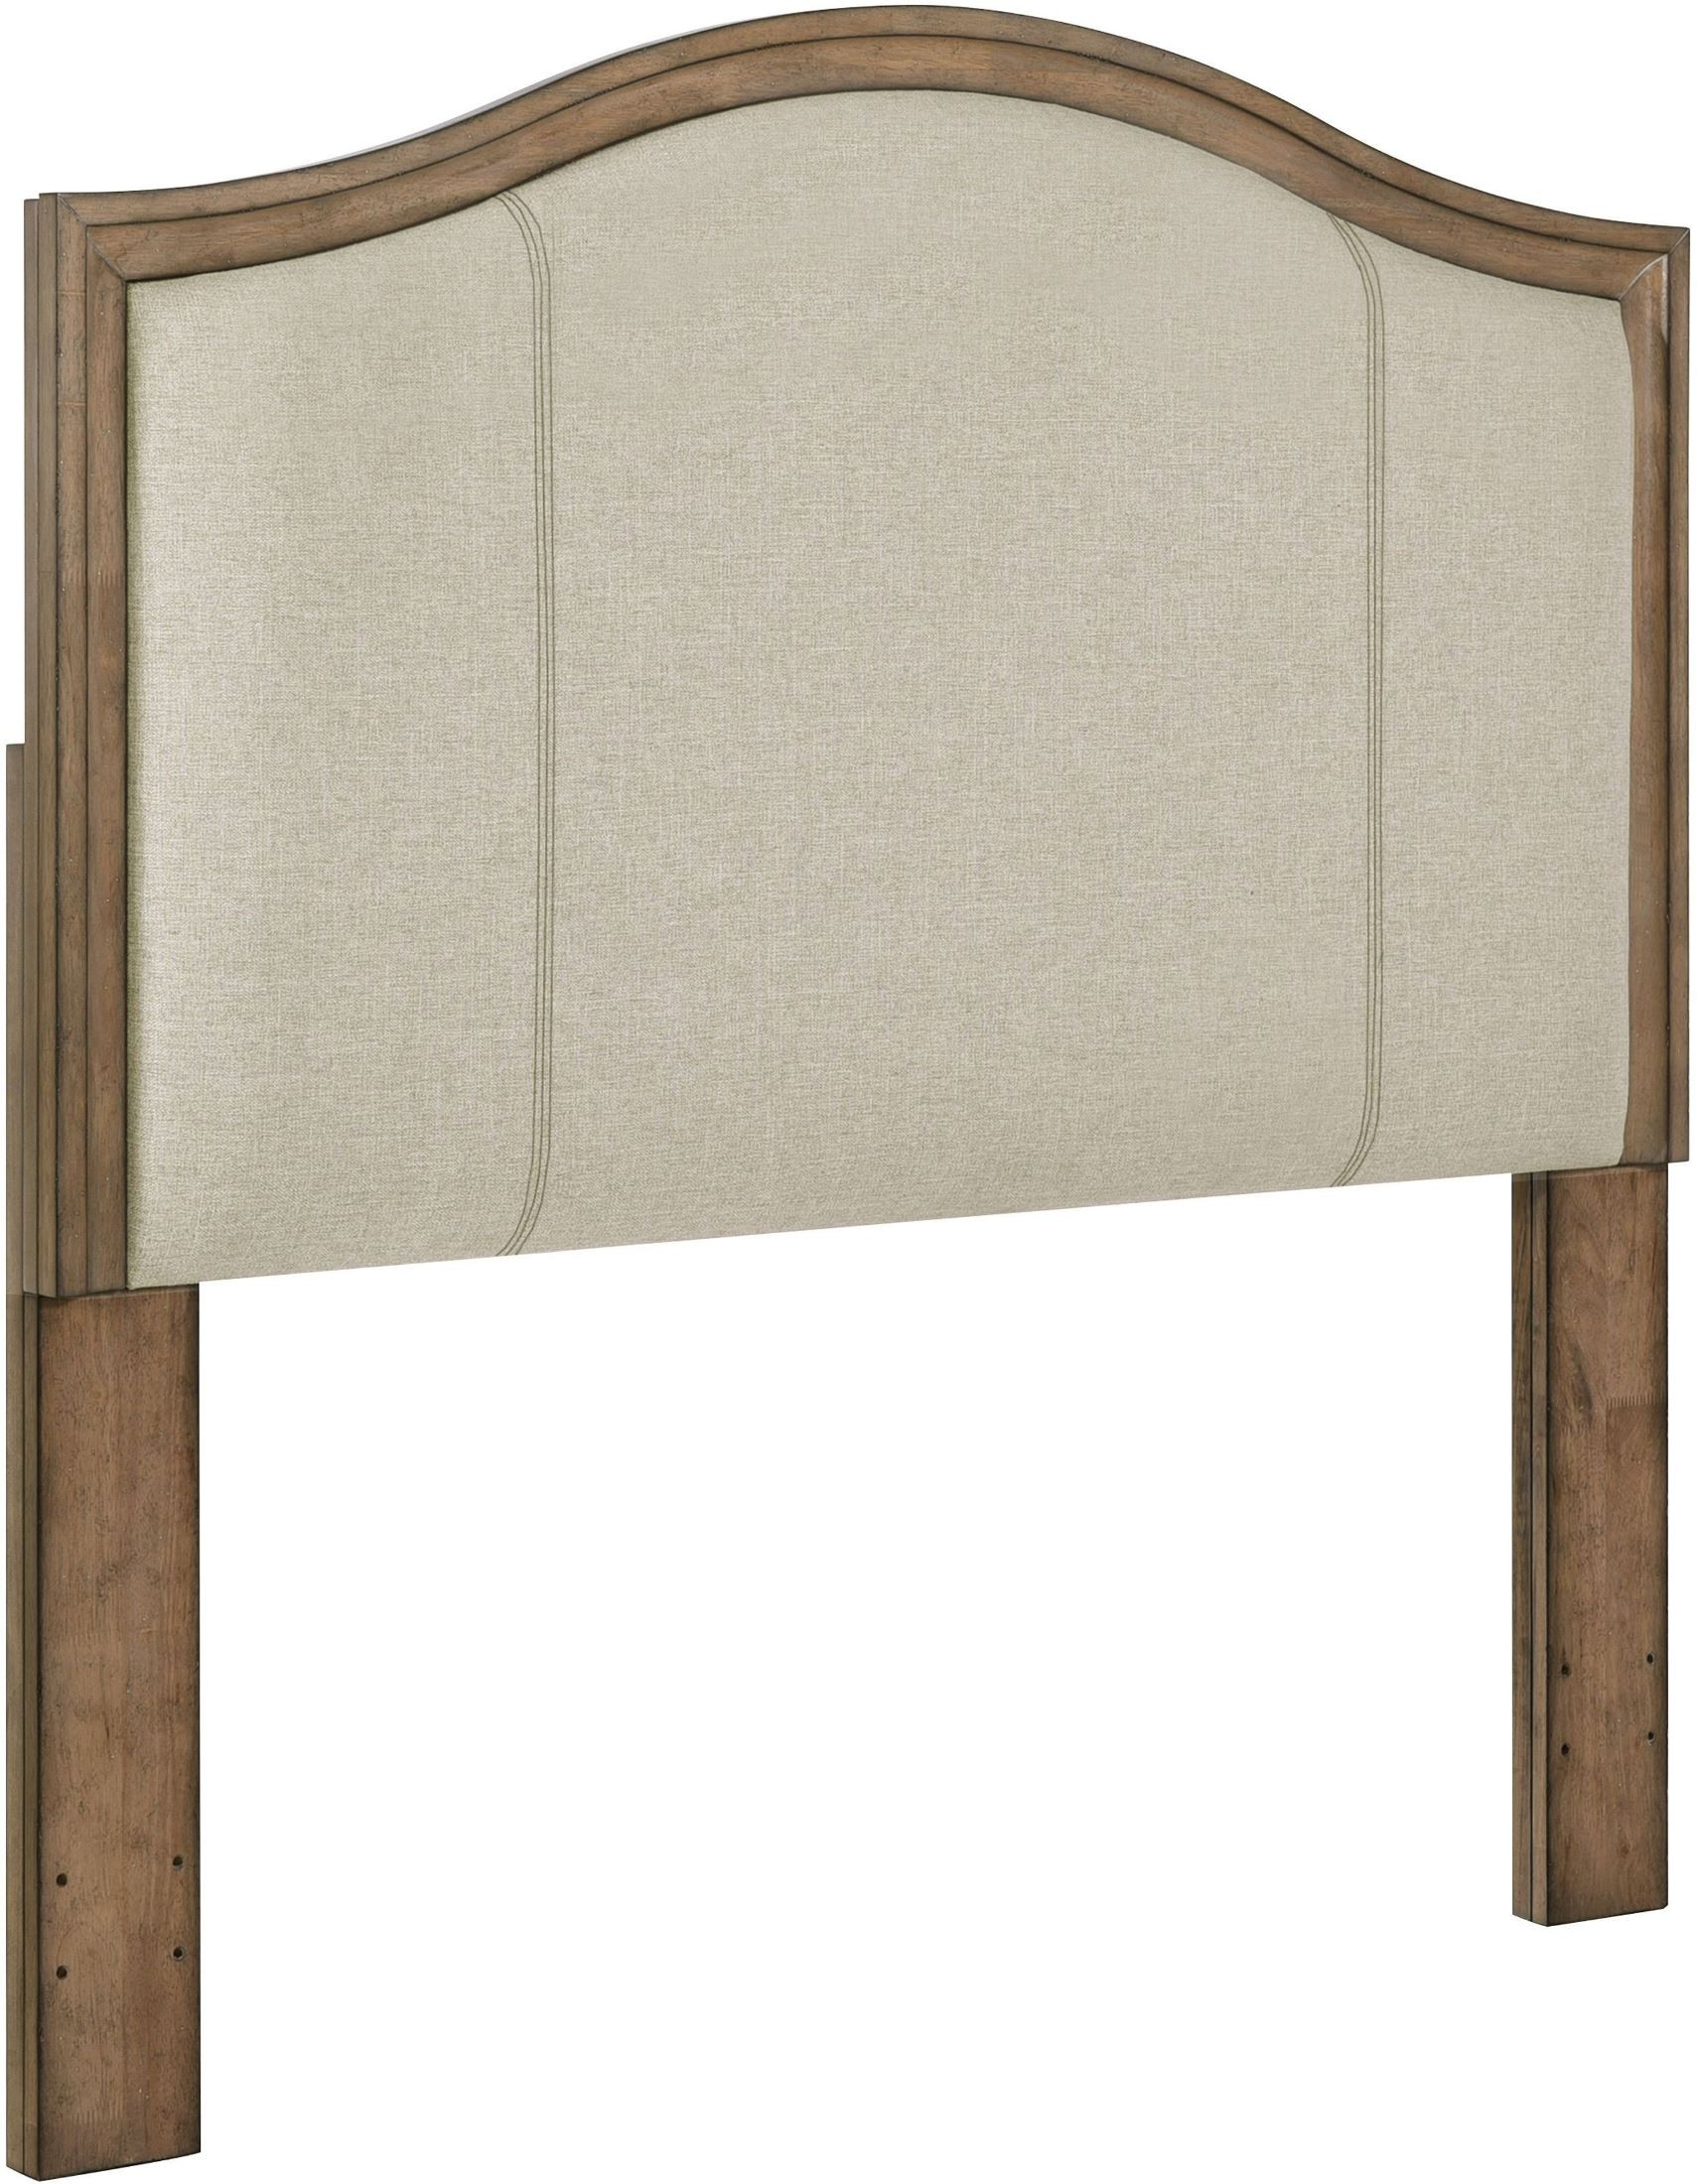 Camel Back Upholstered Panel Queen Wood Headboard From